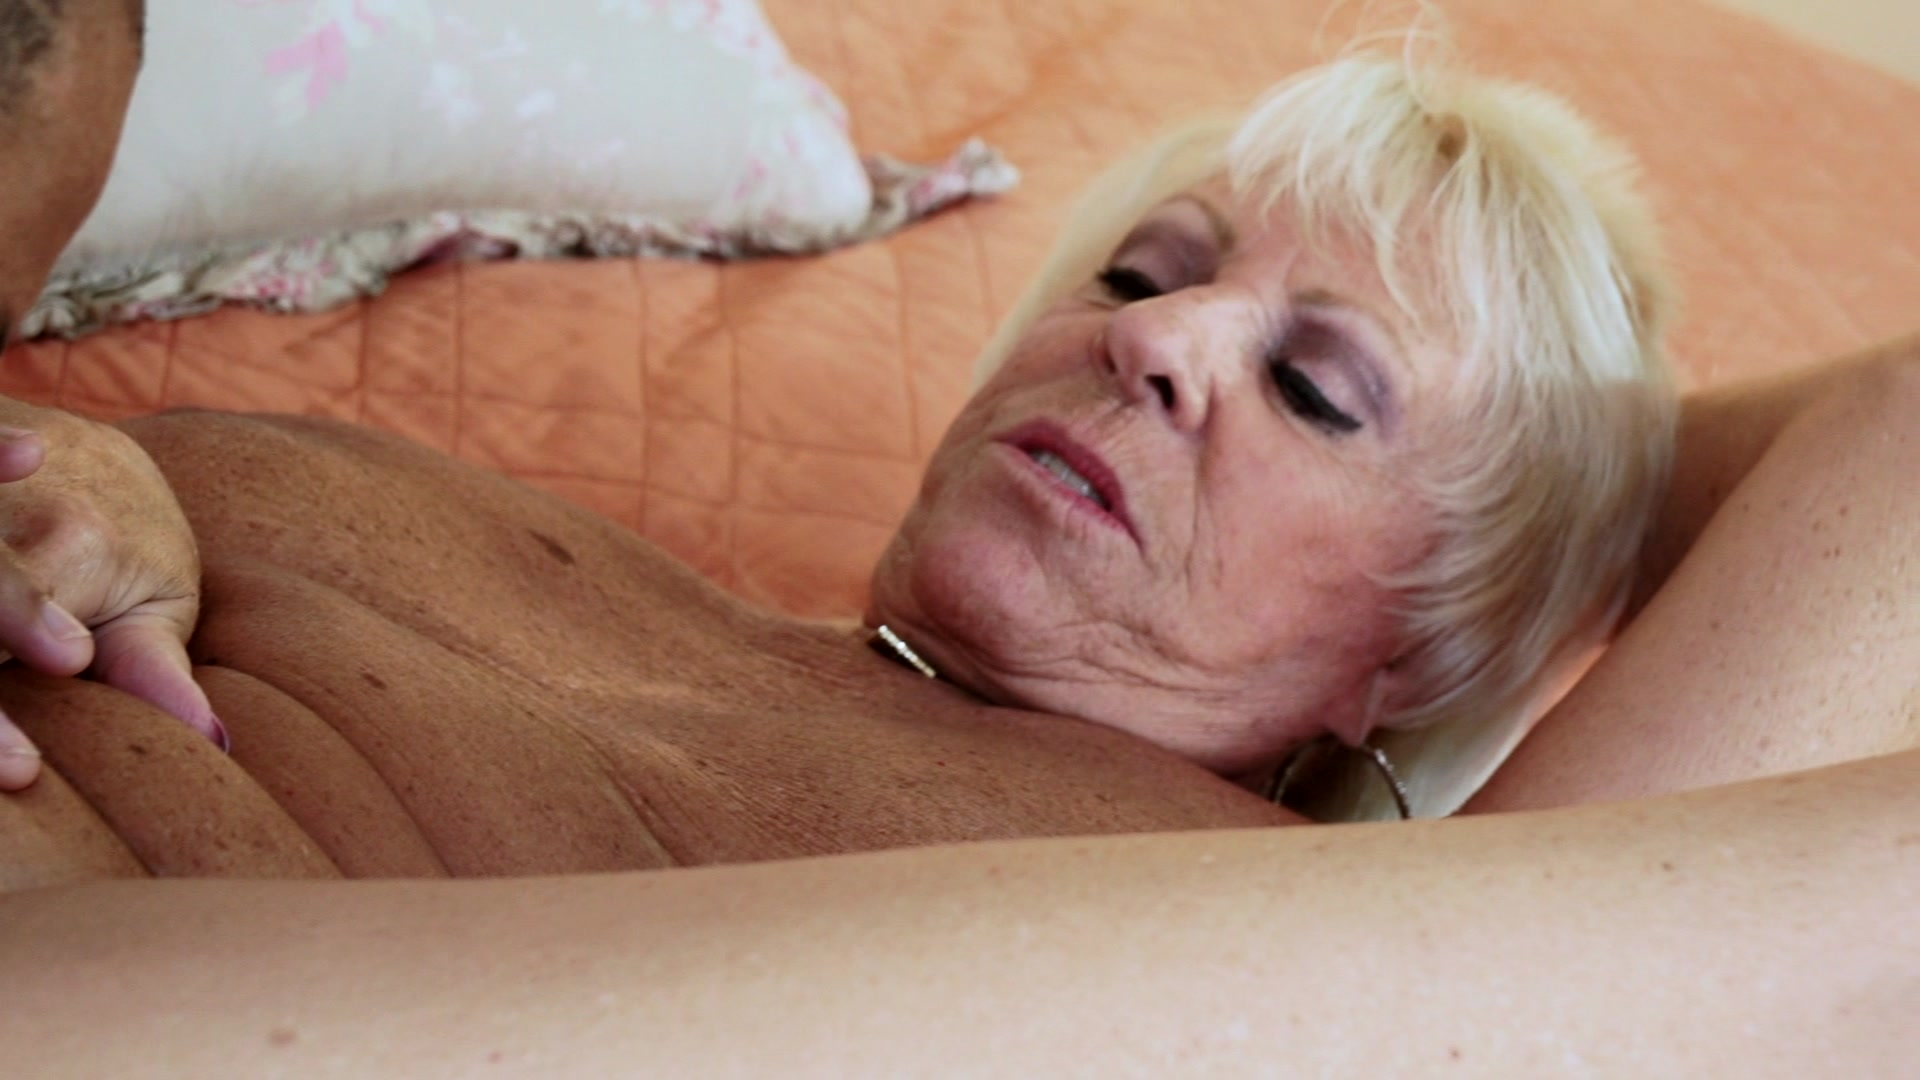 trailers | horny grannies love to fuck 10 porn video @ adult dvd empire